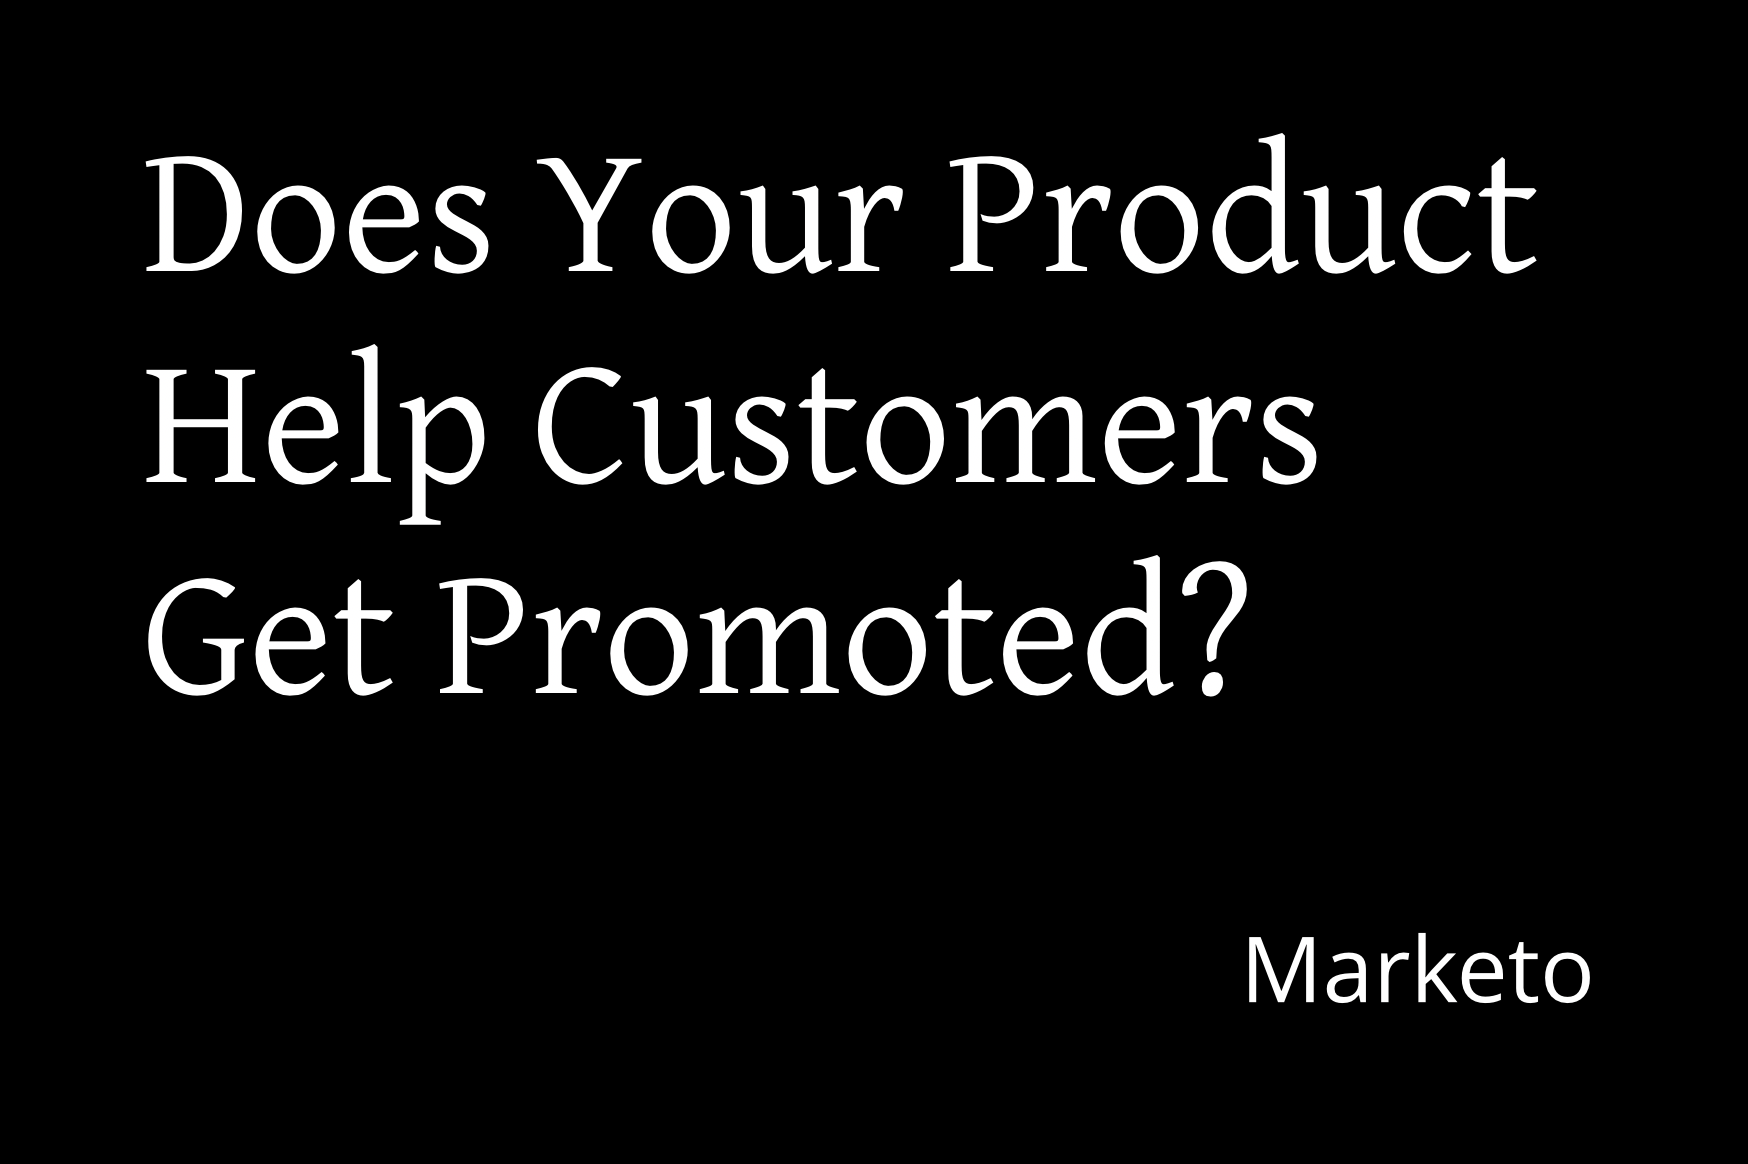 Does Your Product Help Your Customers Get Promoted - Marketo